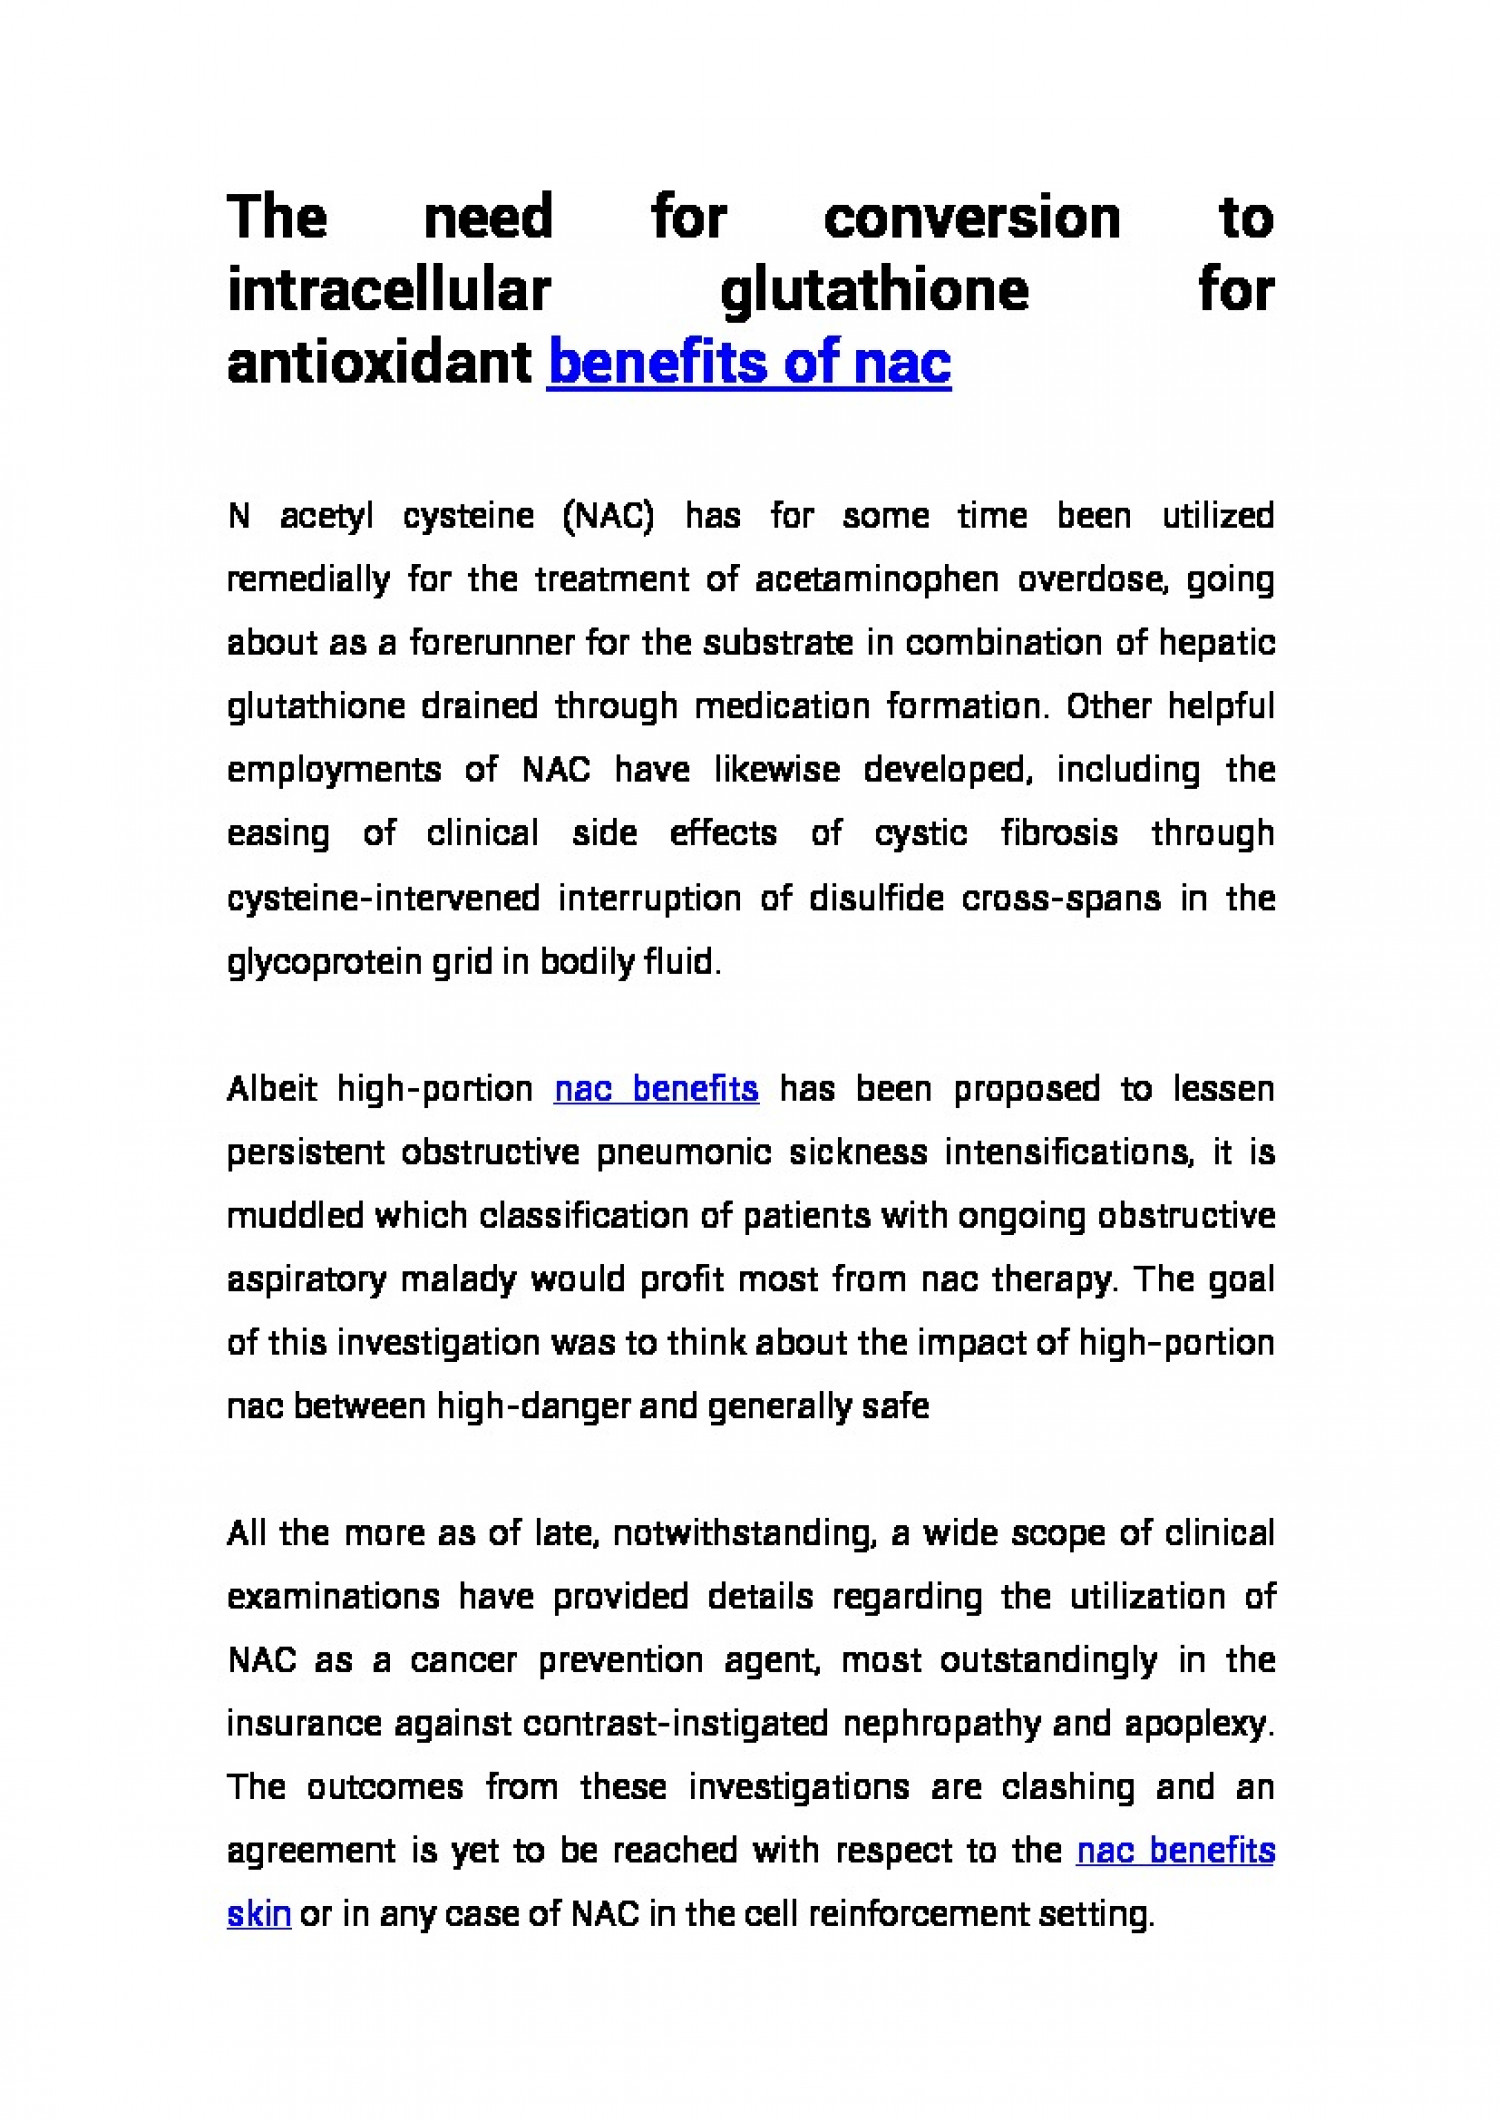 The need for conversion to intracellular glutathione for antioxidant benefits of nac Infographic